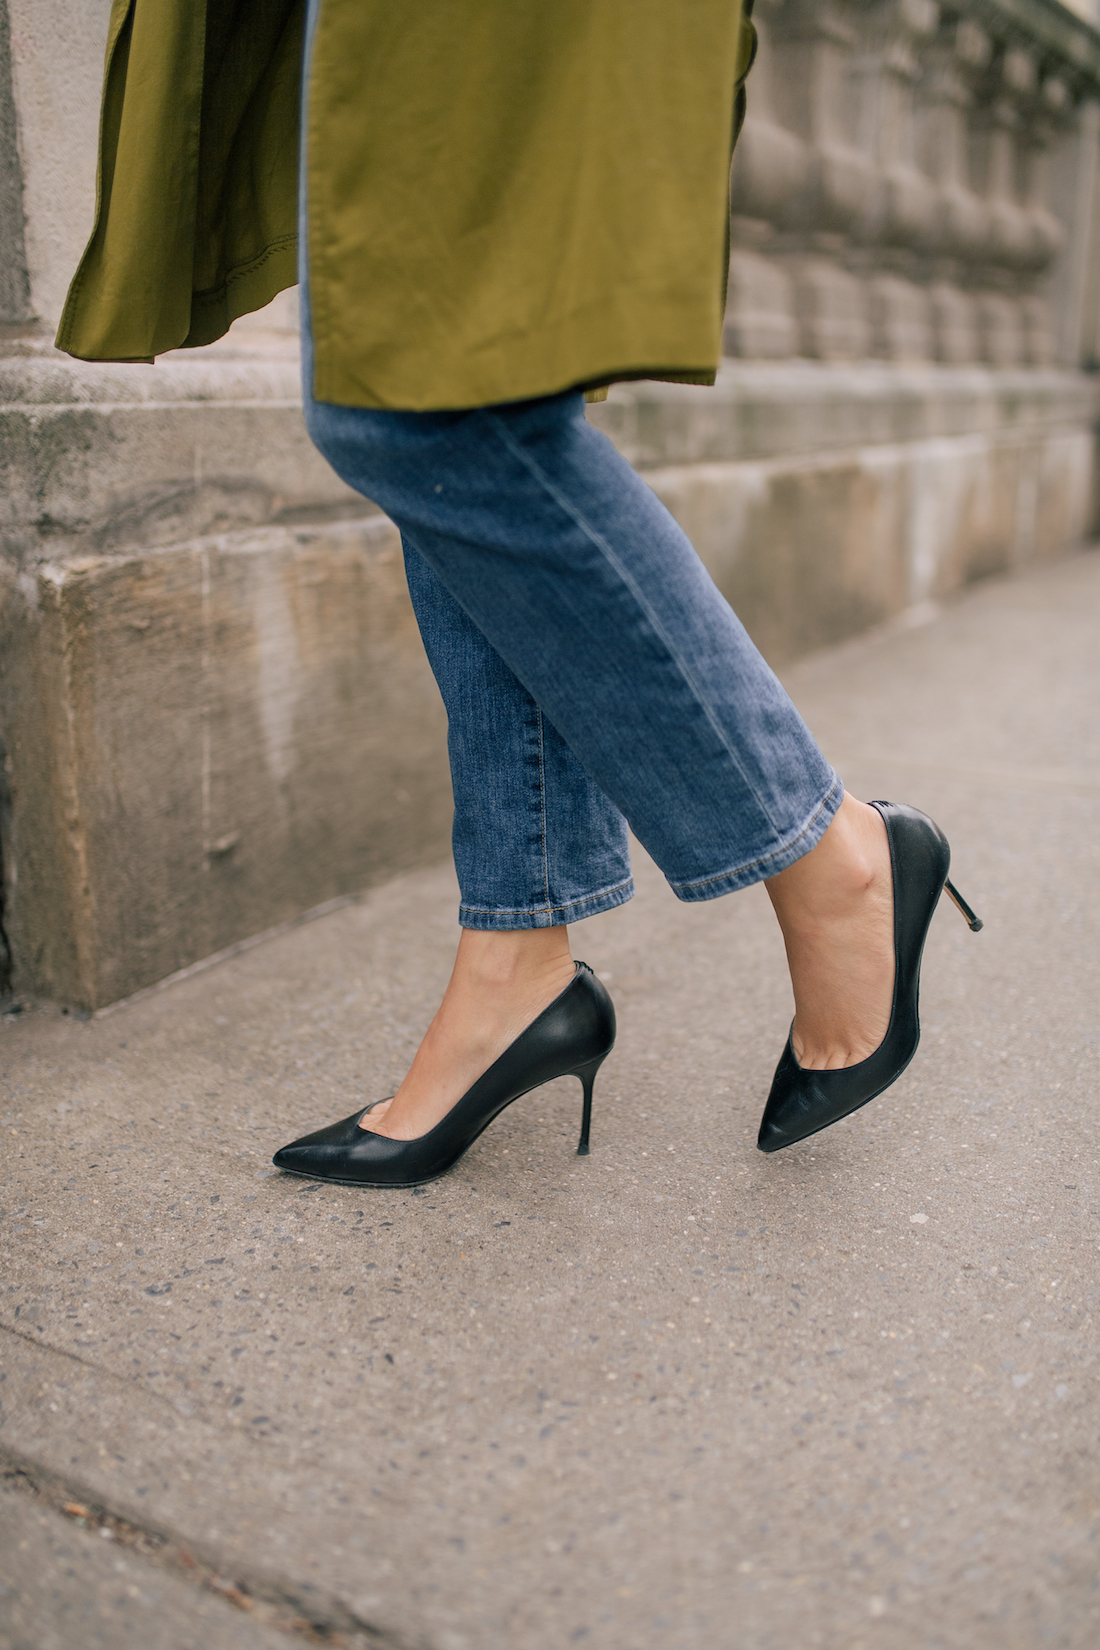 The Perfect Pump Sarah Flint by The Stripe Blog